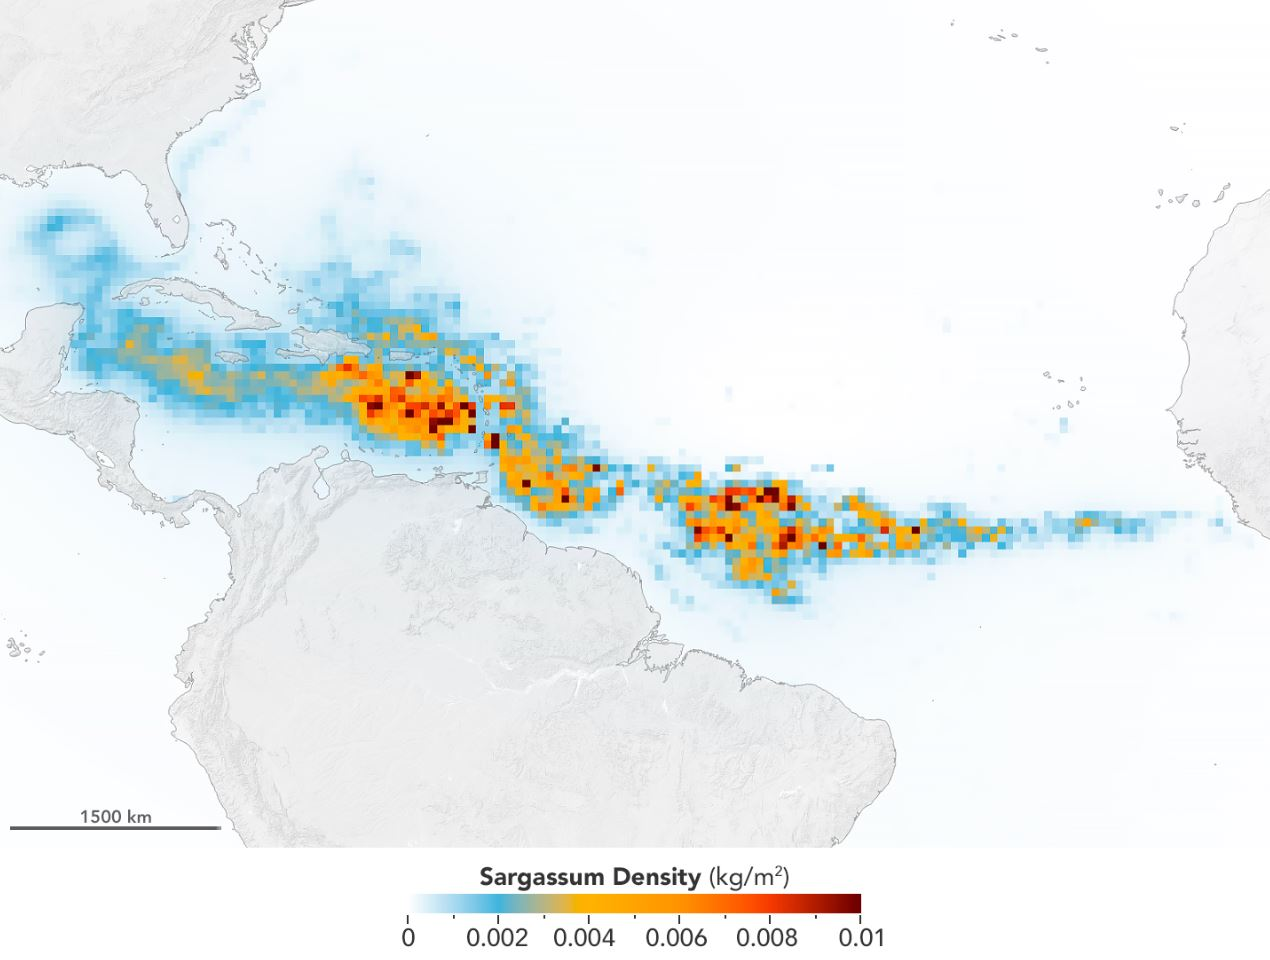 The Great Atlantic Sargassum Belt in July 2018.Scientists used NASA's Moderate Resolution Imaging Spectroradiometer (MODIS) on Terra and Aqua satellites to discover the Great Atlantic Sargassum Belt (GASB), which started in 2011. It has occurred every year since, except 2013, and often stretches from the west coast of Africa to the Gulf of Mexico. - Image Credit: NASA/Earth Observatory. Data provided by Mengqiu Wang and Chuanmin Hu, USF College of Marine Science